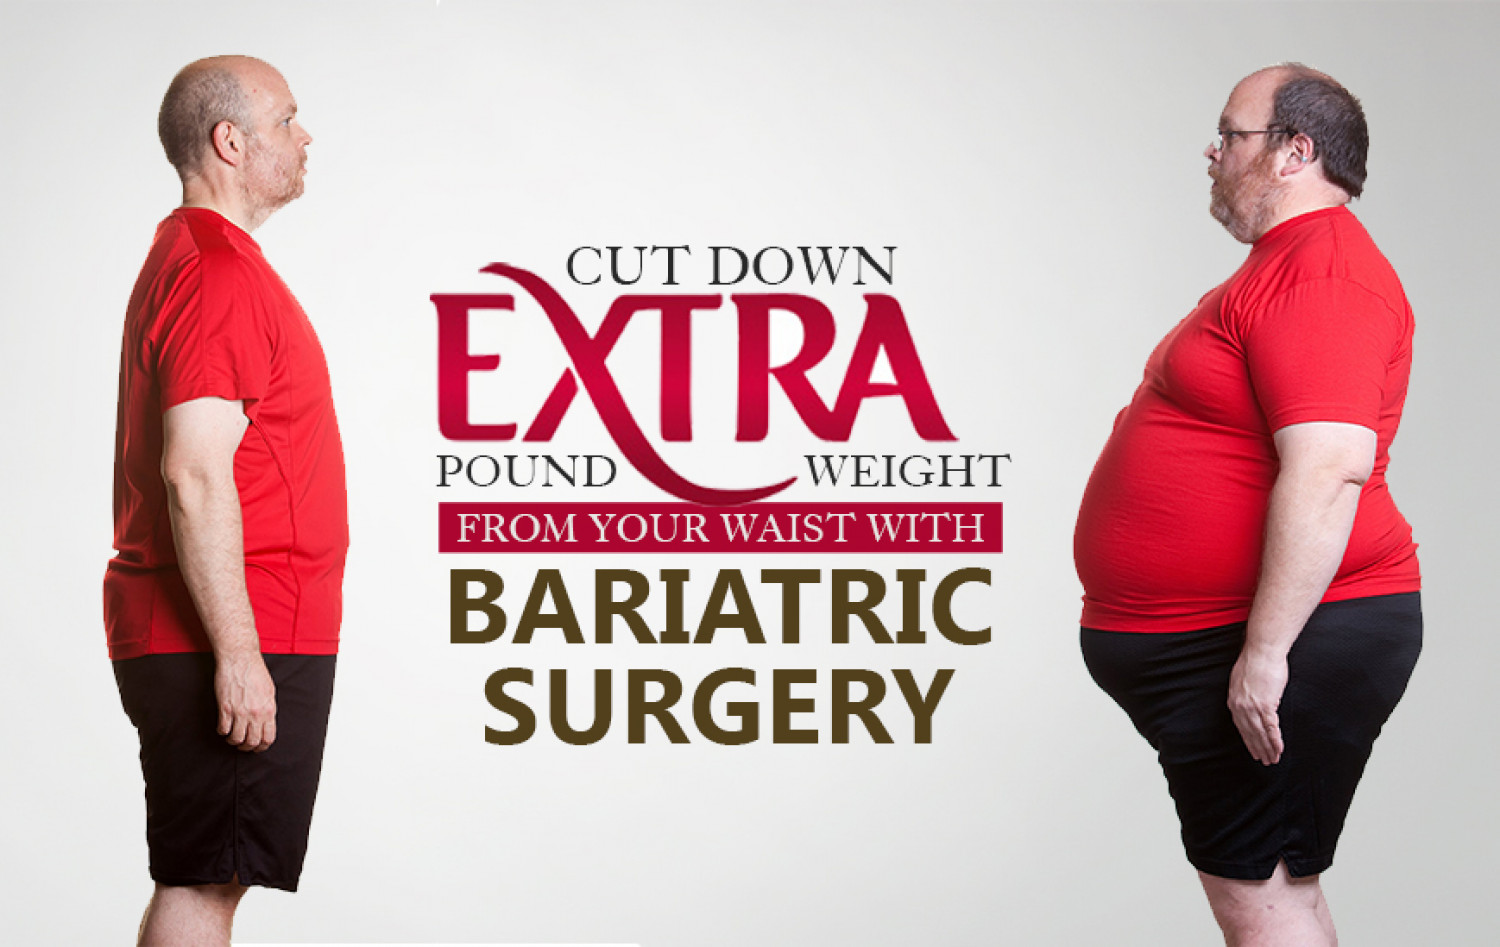 Cut Down More Extra Pound Weight from Your Waist via Bariatric Surgery Infographic